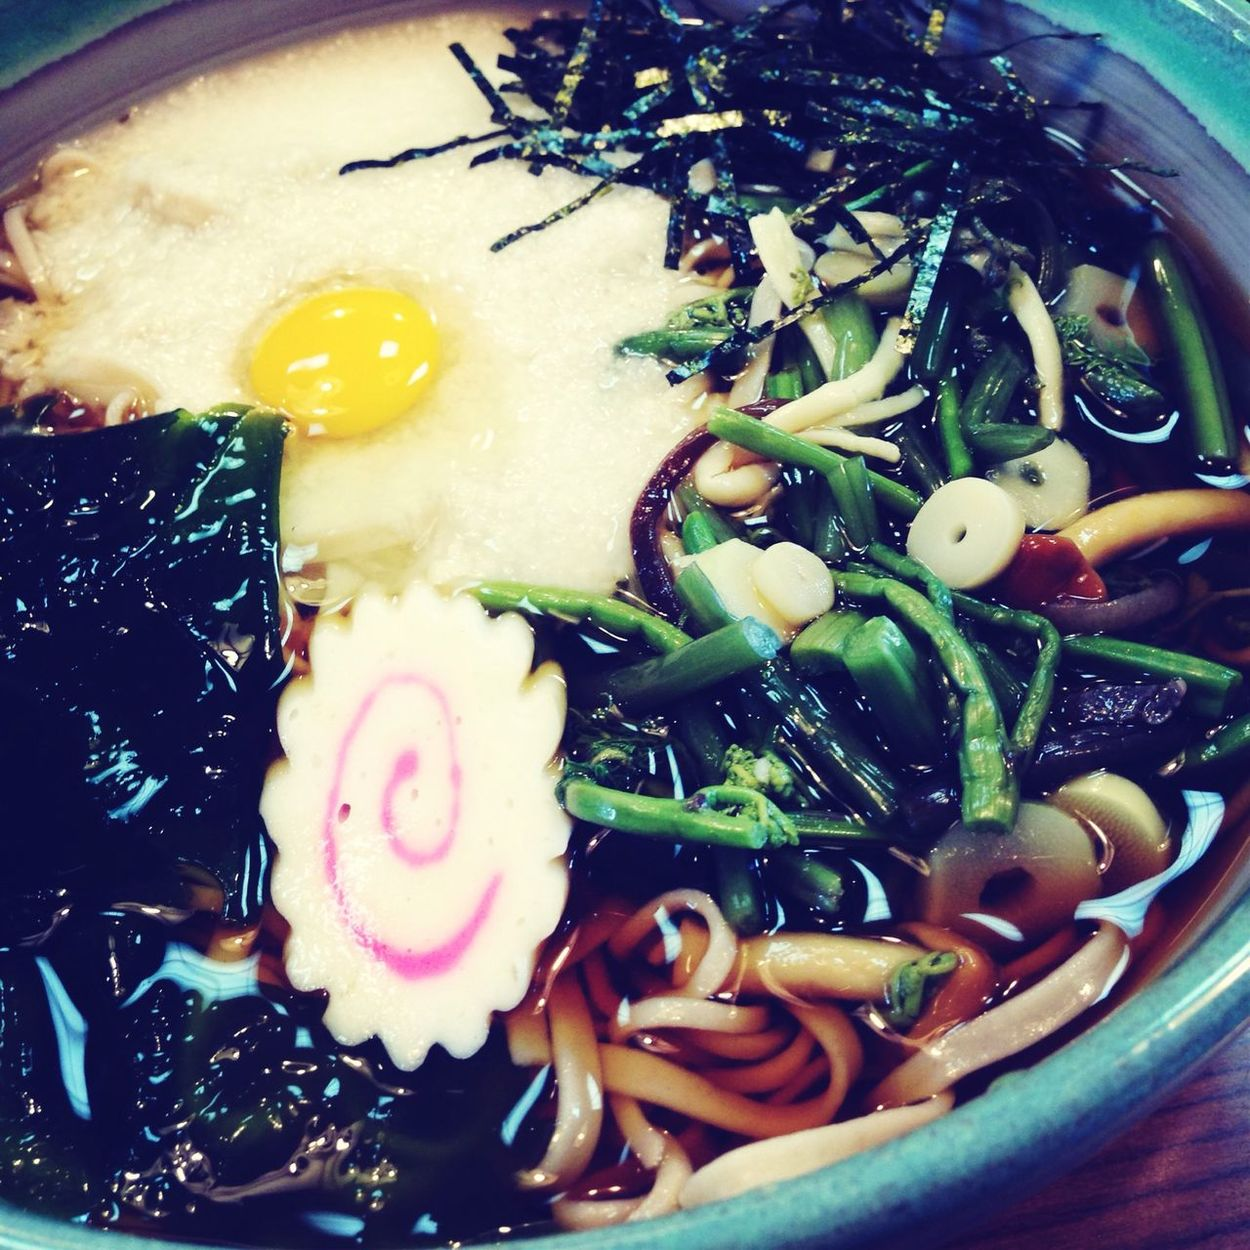 Today's lunch is SOBA noodle at JINDAI-JI Temple!